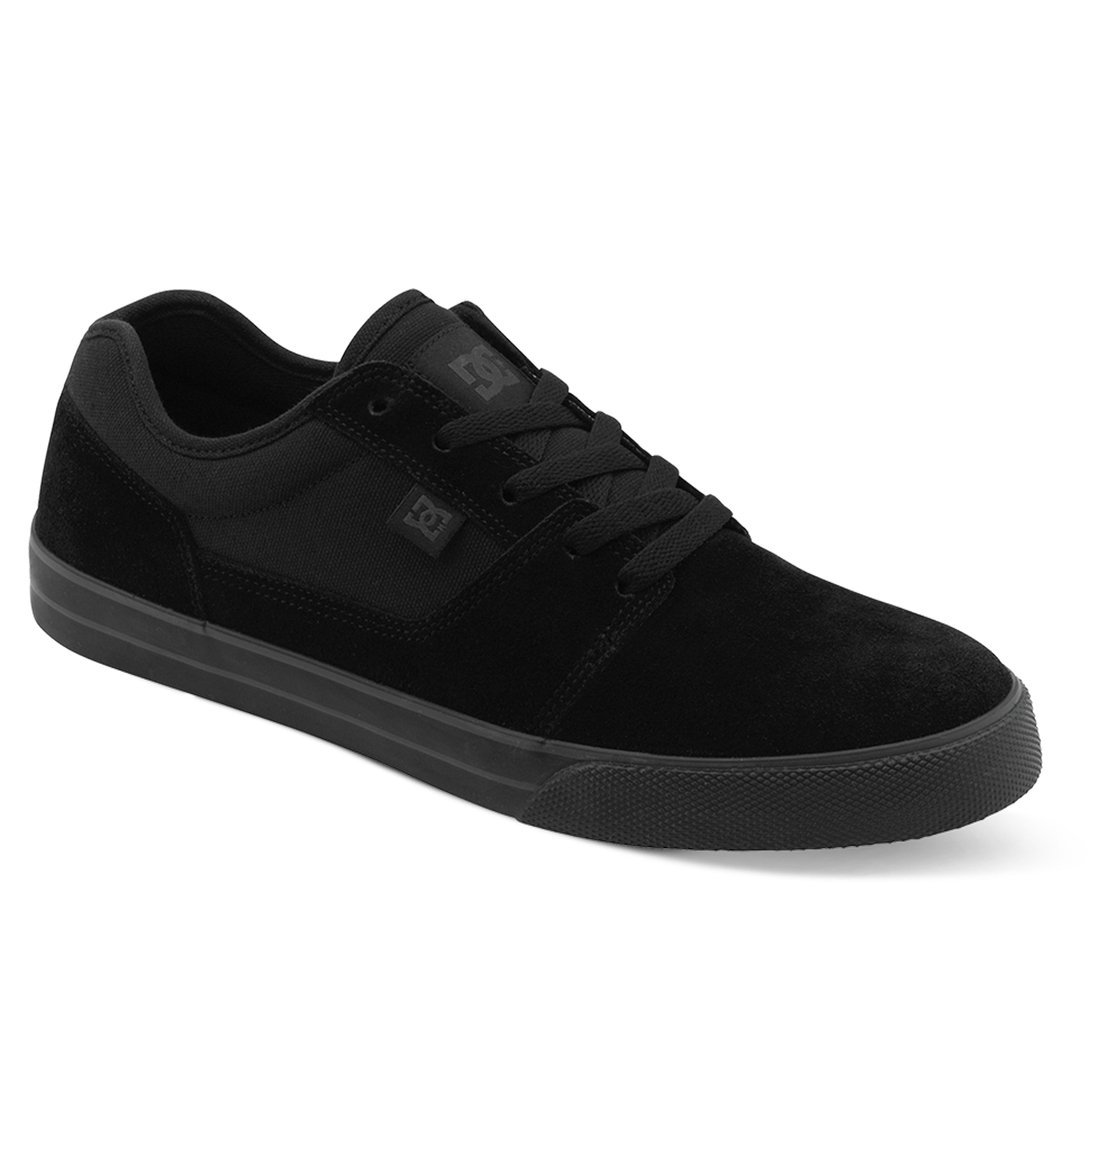 DC Black Sneakers store for sale quality free shipping outlet cheap online store Manchester discount cheap online outlet choice yIGBv